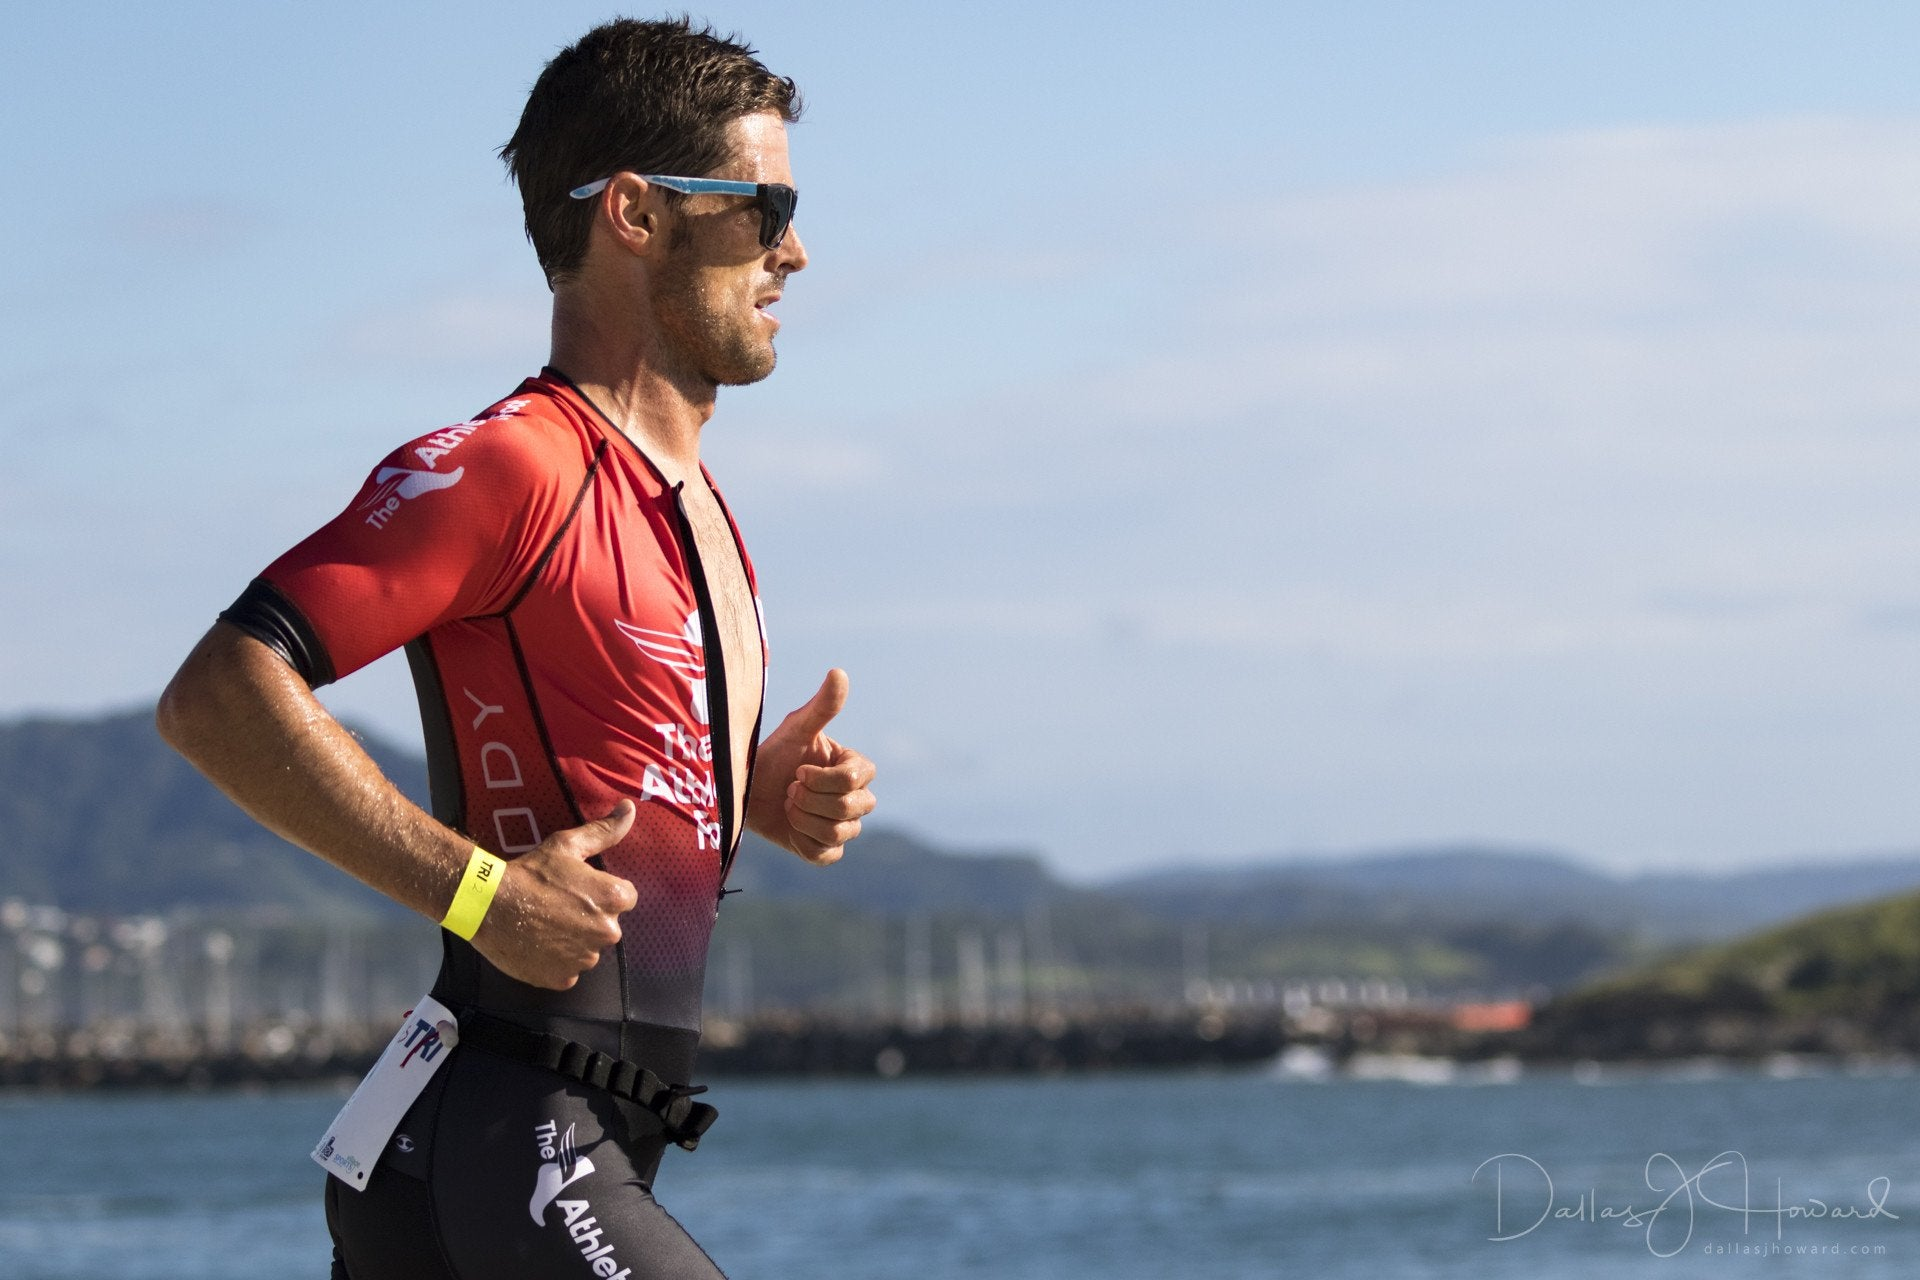 Welcome to the Parcours team Dan Stein - pro triathlete